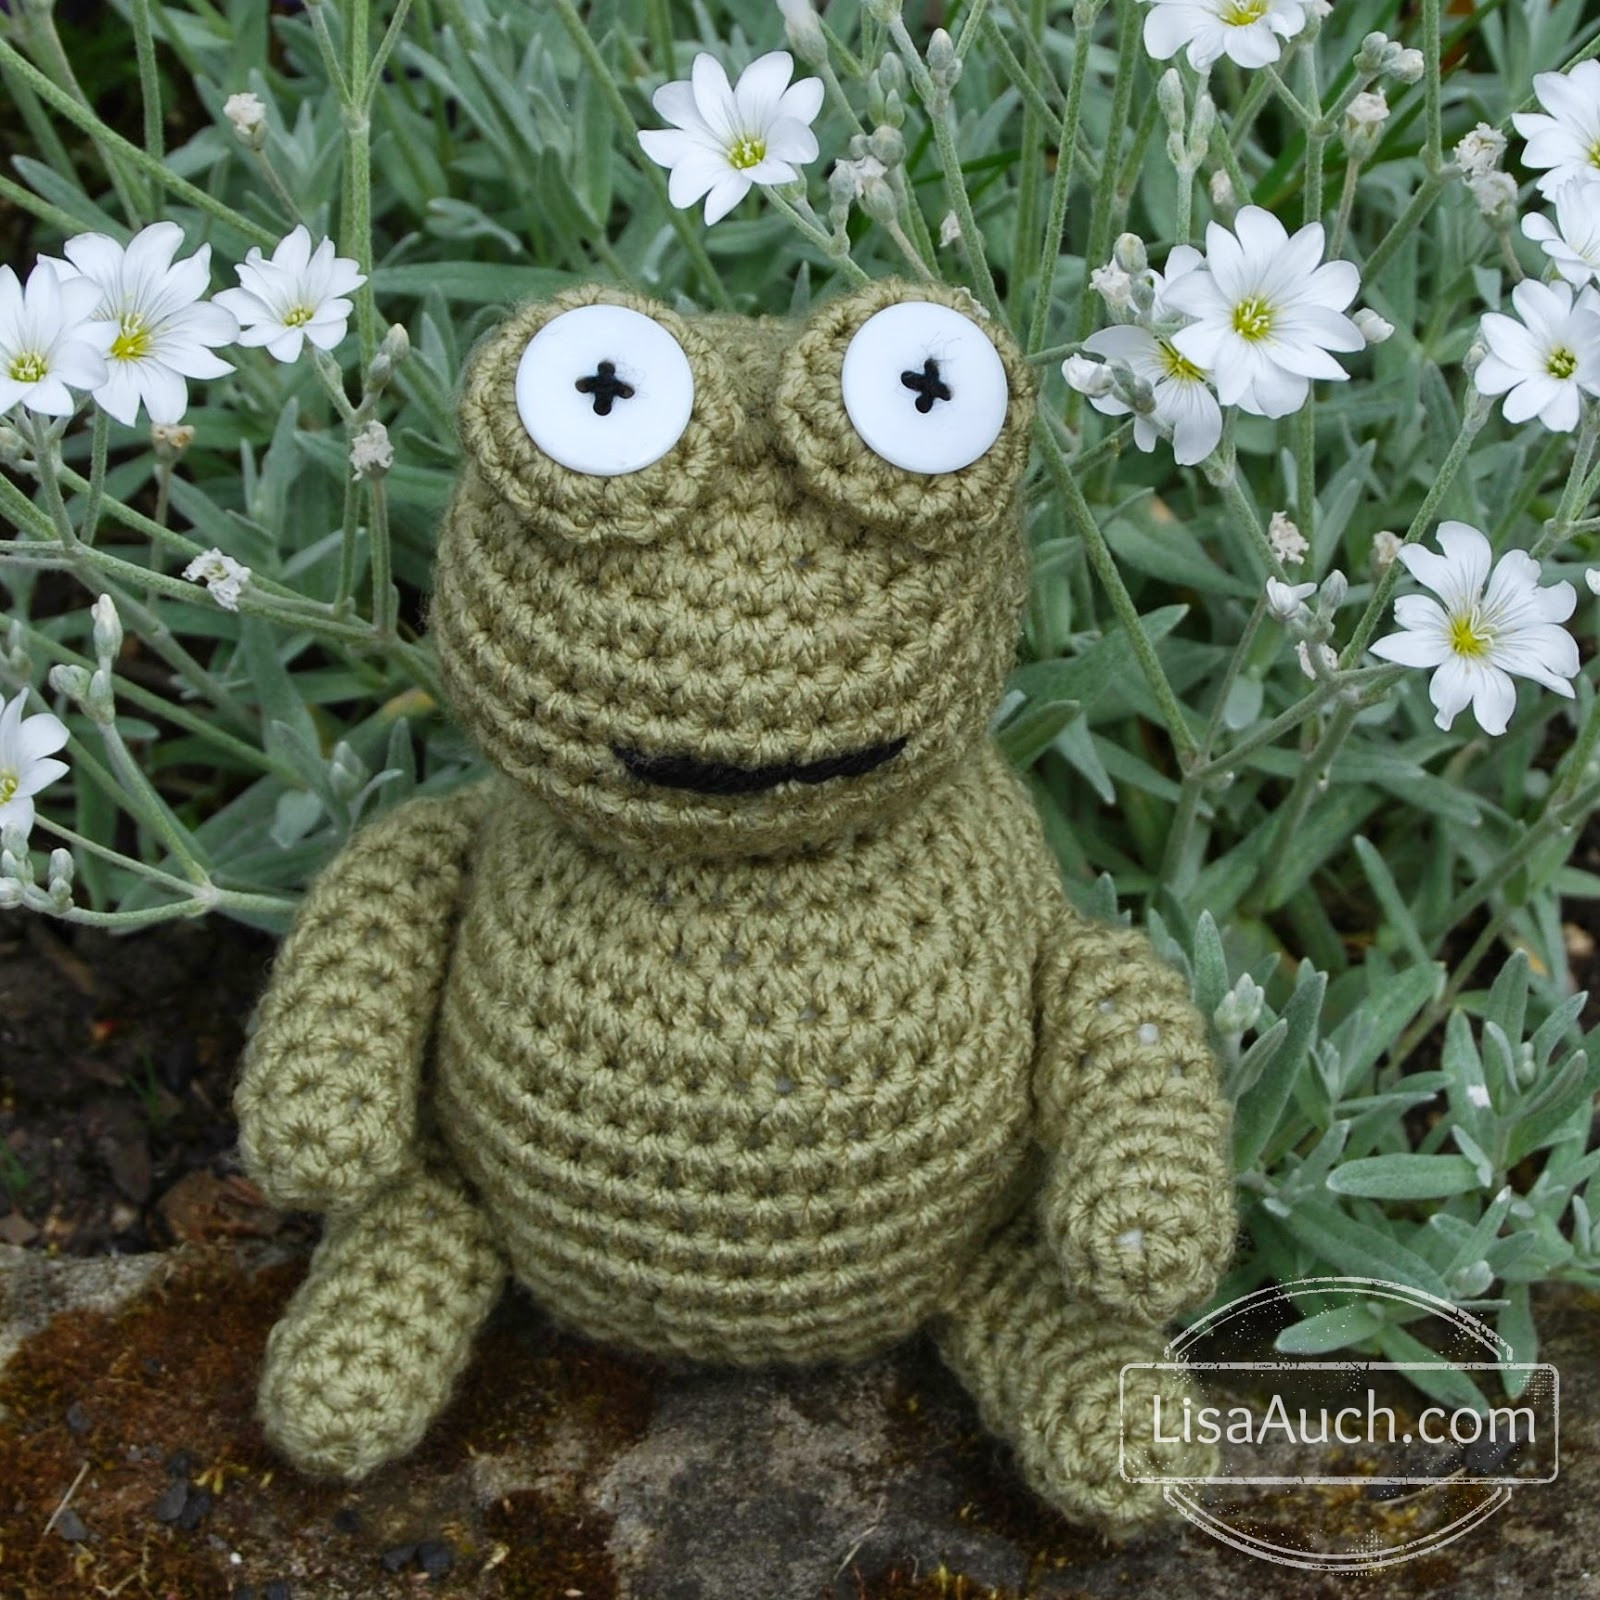 Free Crochet Animal Patterns Inspirational Free Crochet Patterns and Designs by Lisaauch Free Of Attractive 49 Pictures Free Crochet Animal Patterns